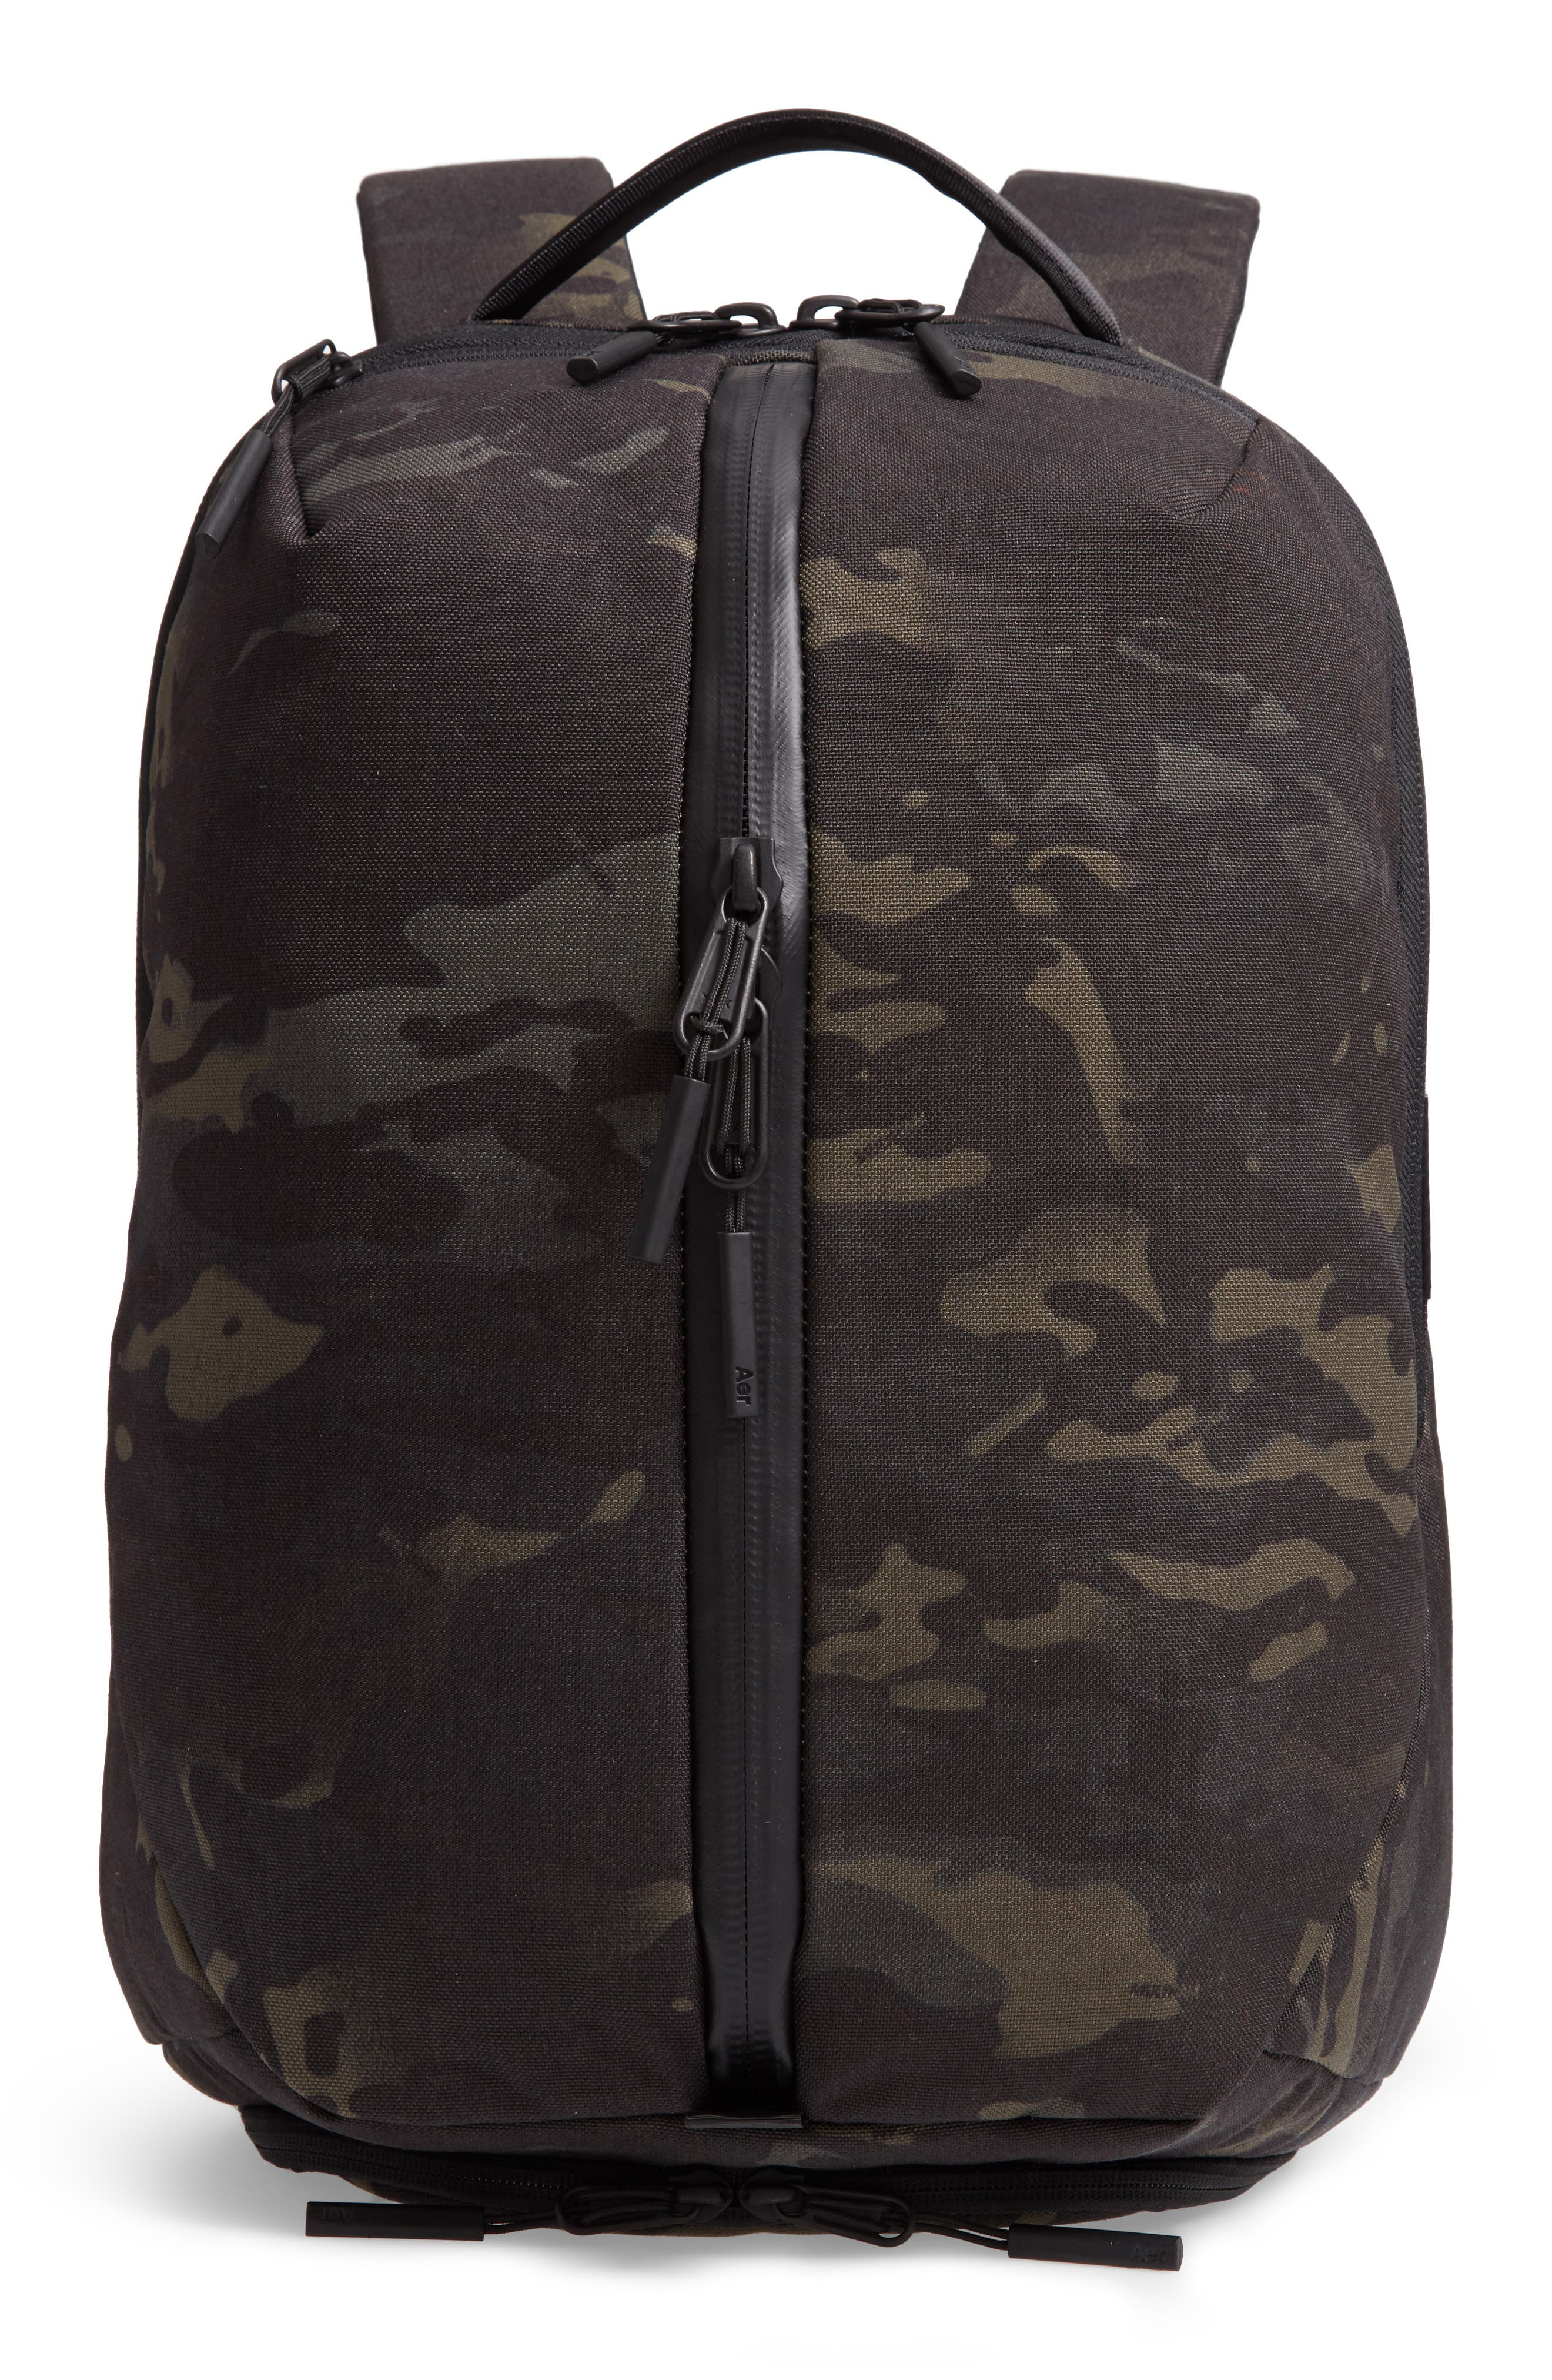 Fit Pack 2 Backpack,                         Main,                         color, BLACK CAMO